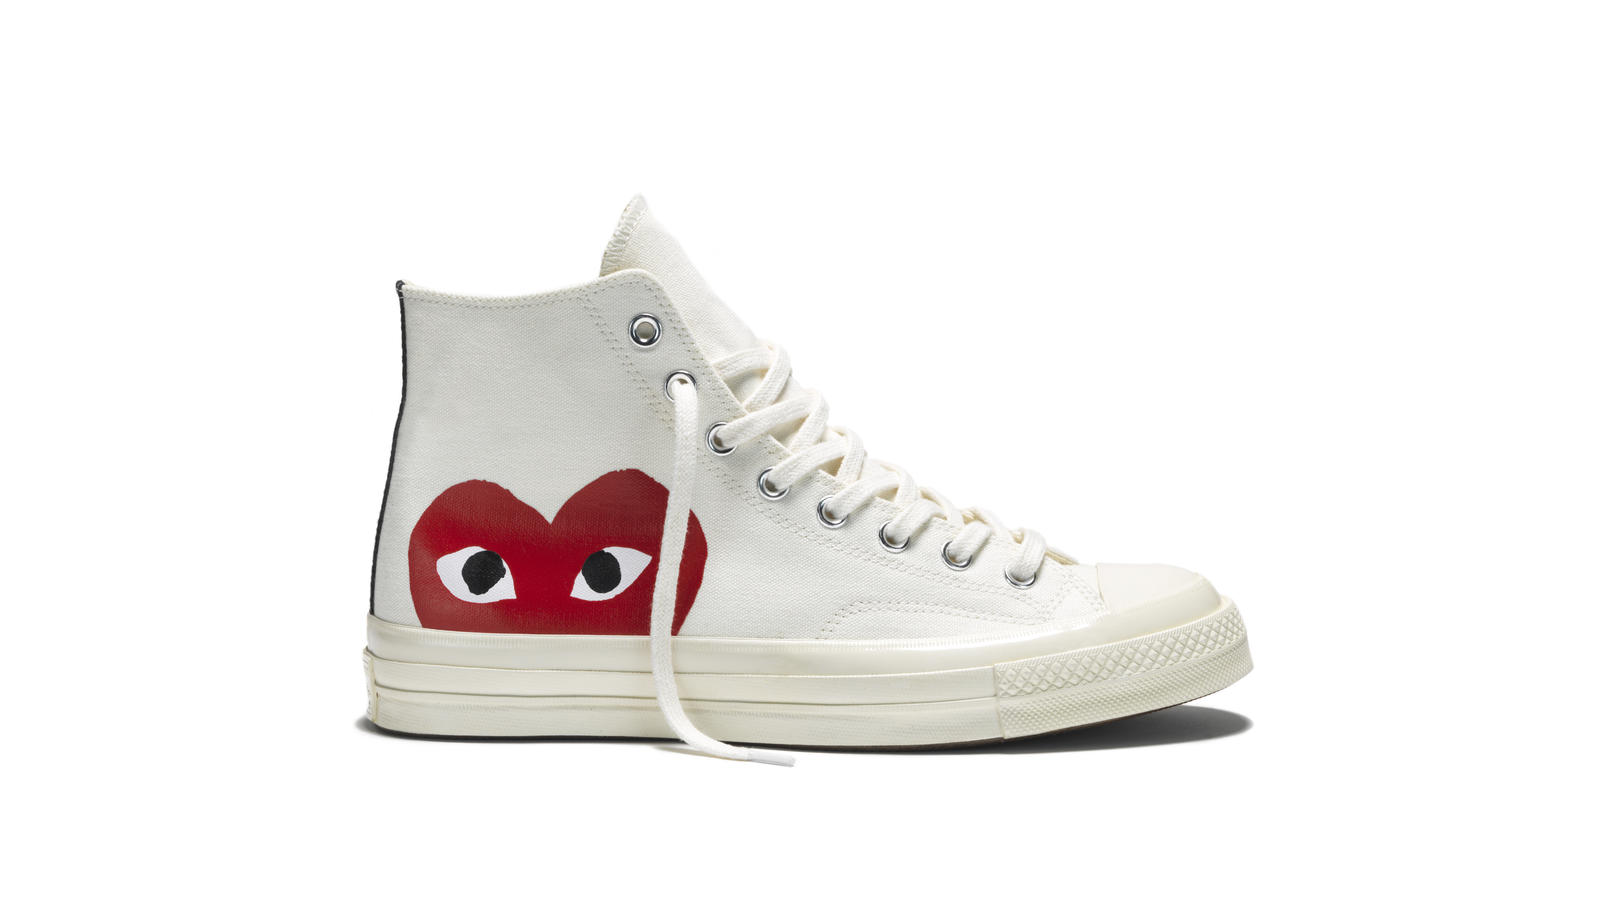 Buy converse high tops collab > 57% off!